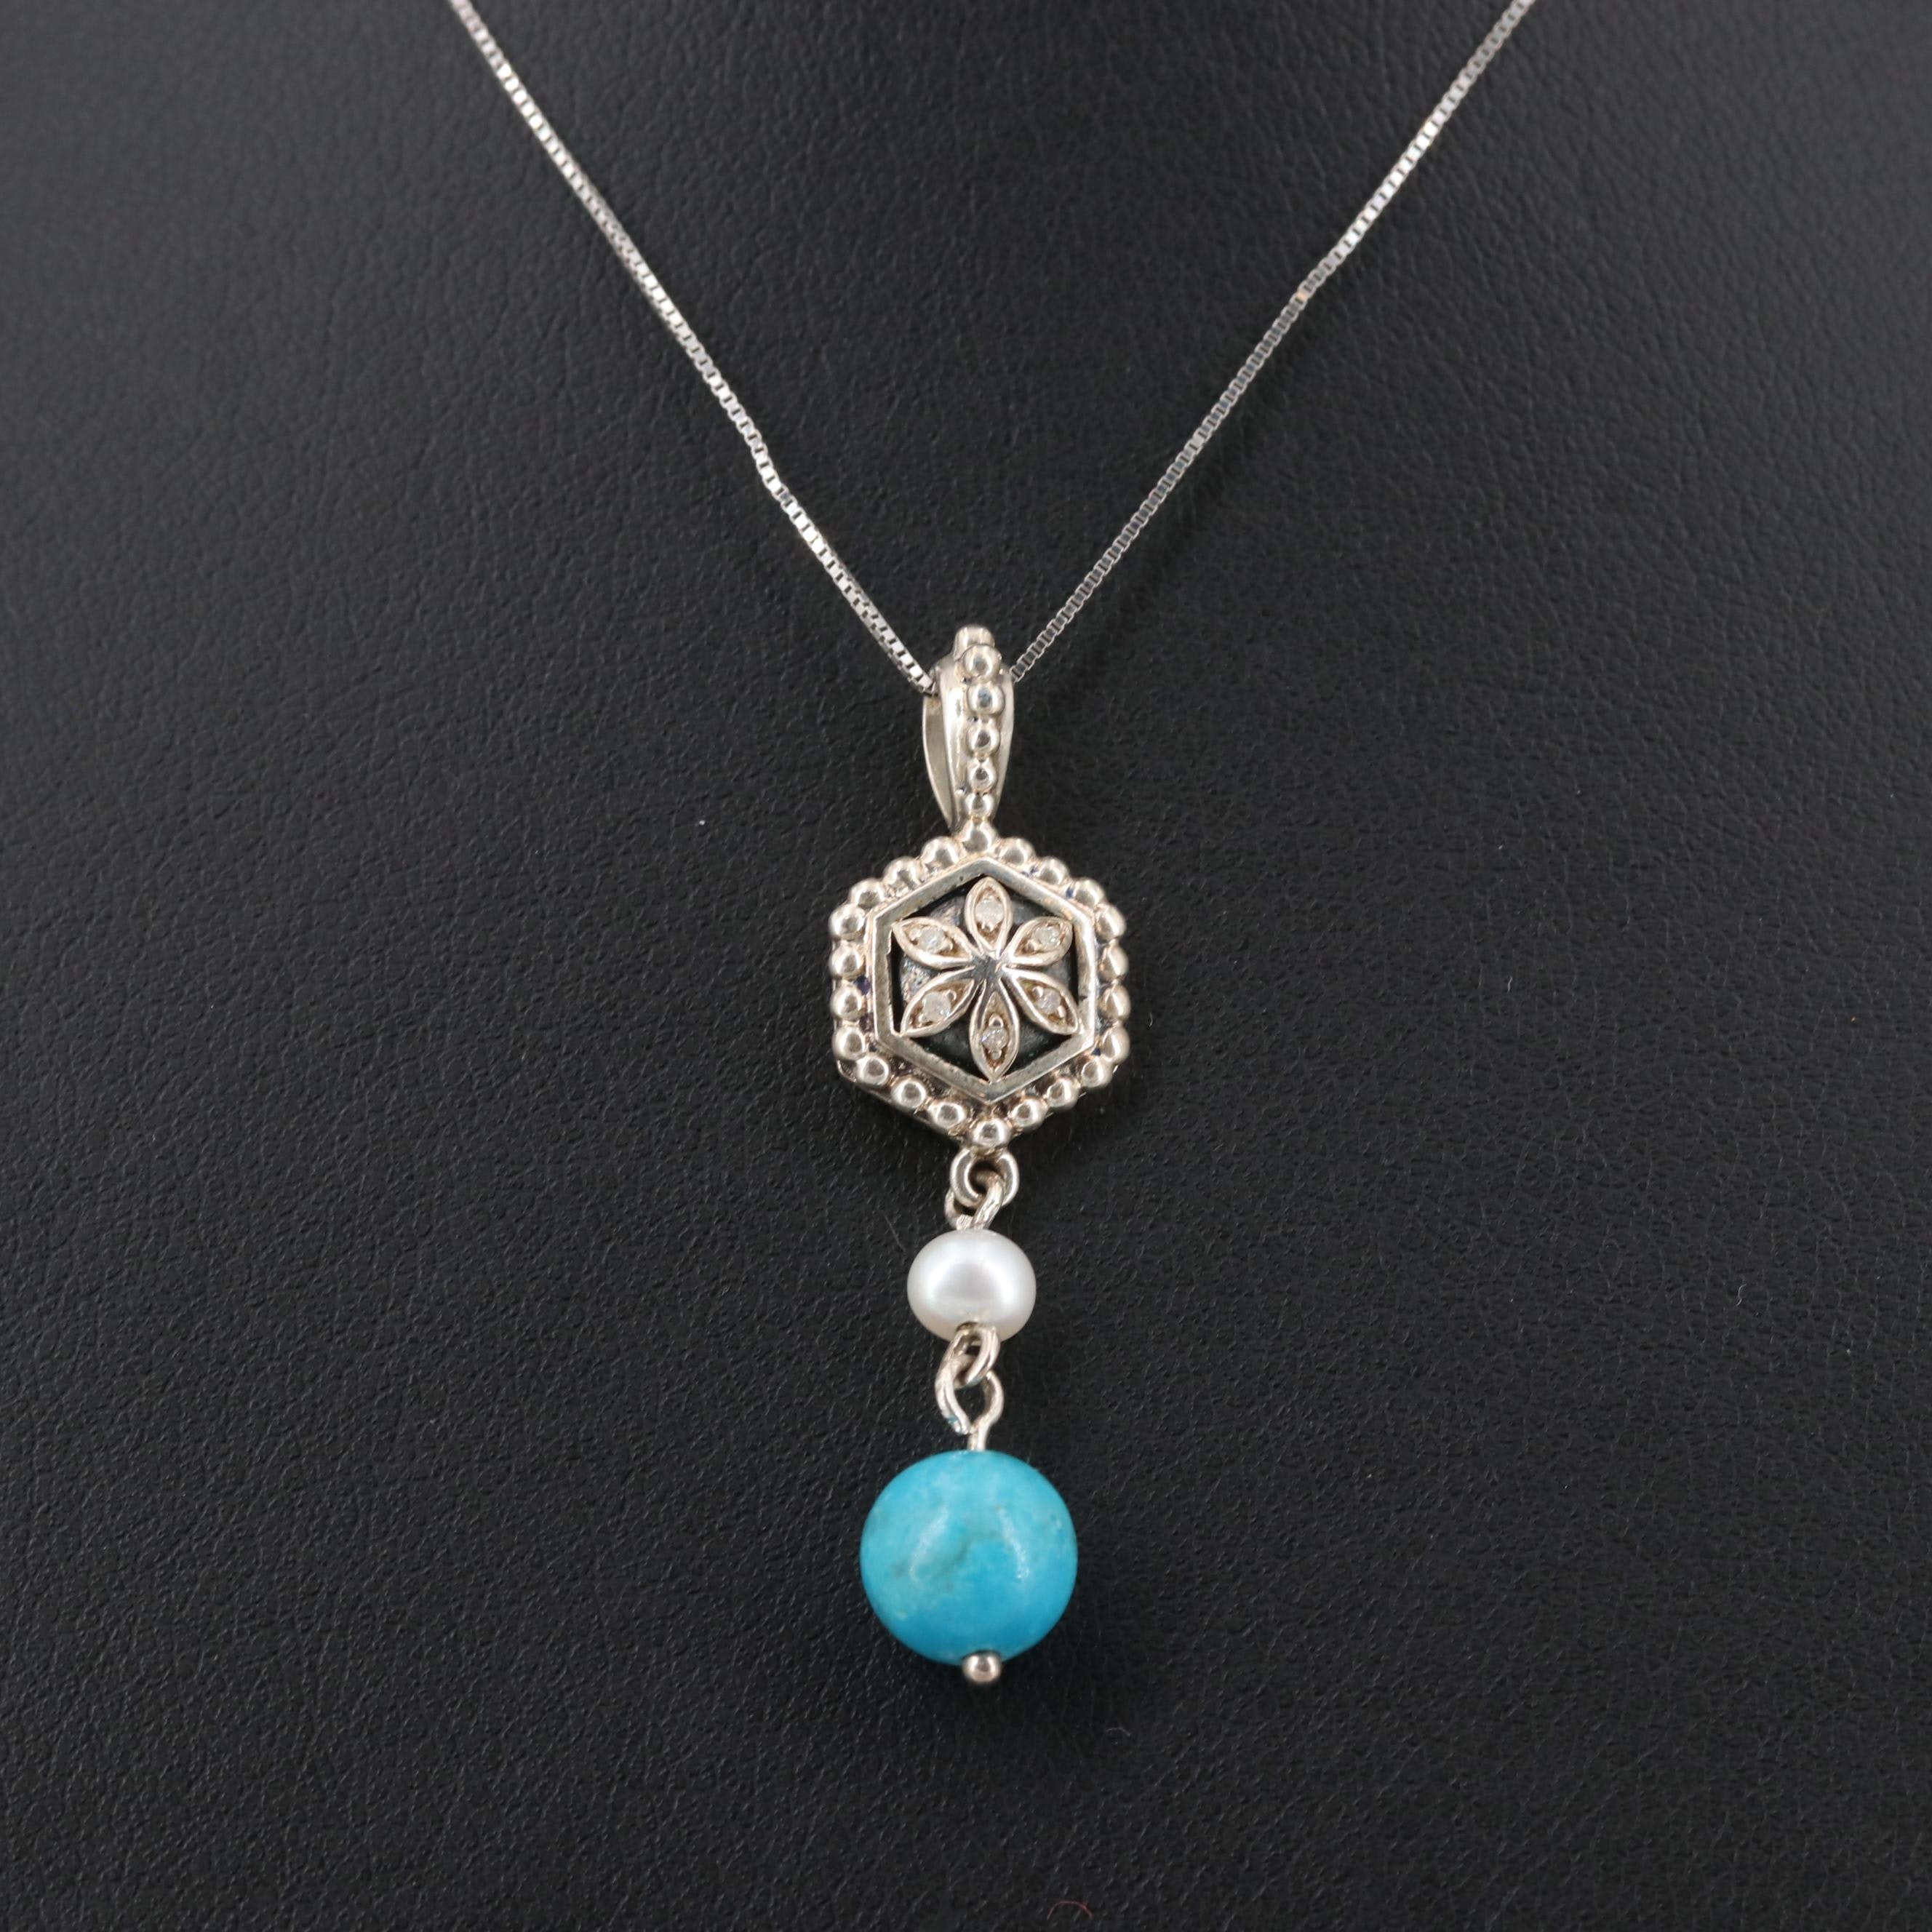 Sterling Silver Turquoise, Cultured Pearl, and Diamond Pendant Necklace